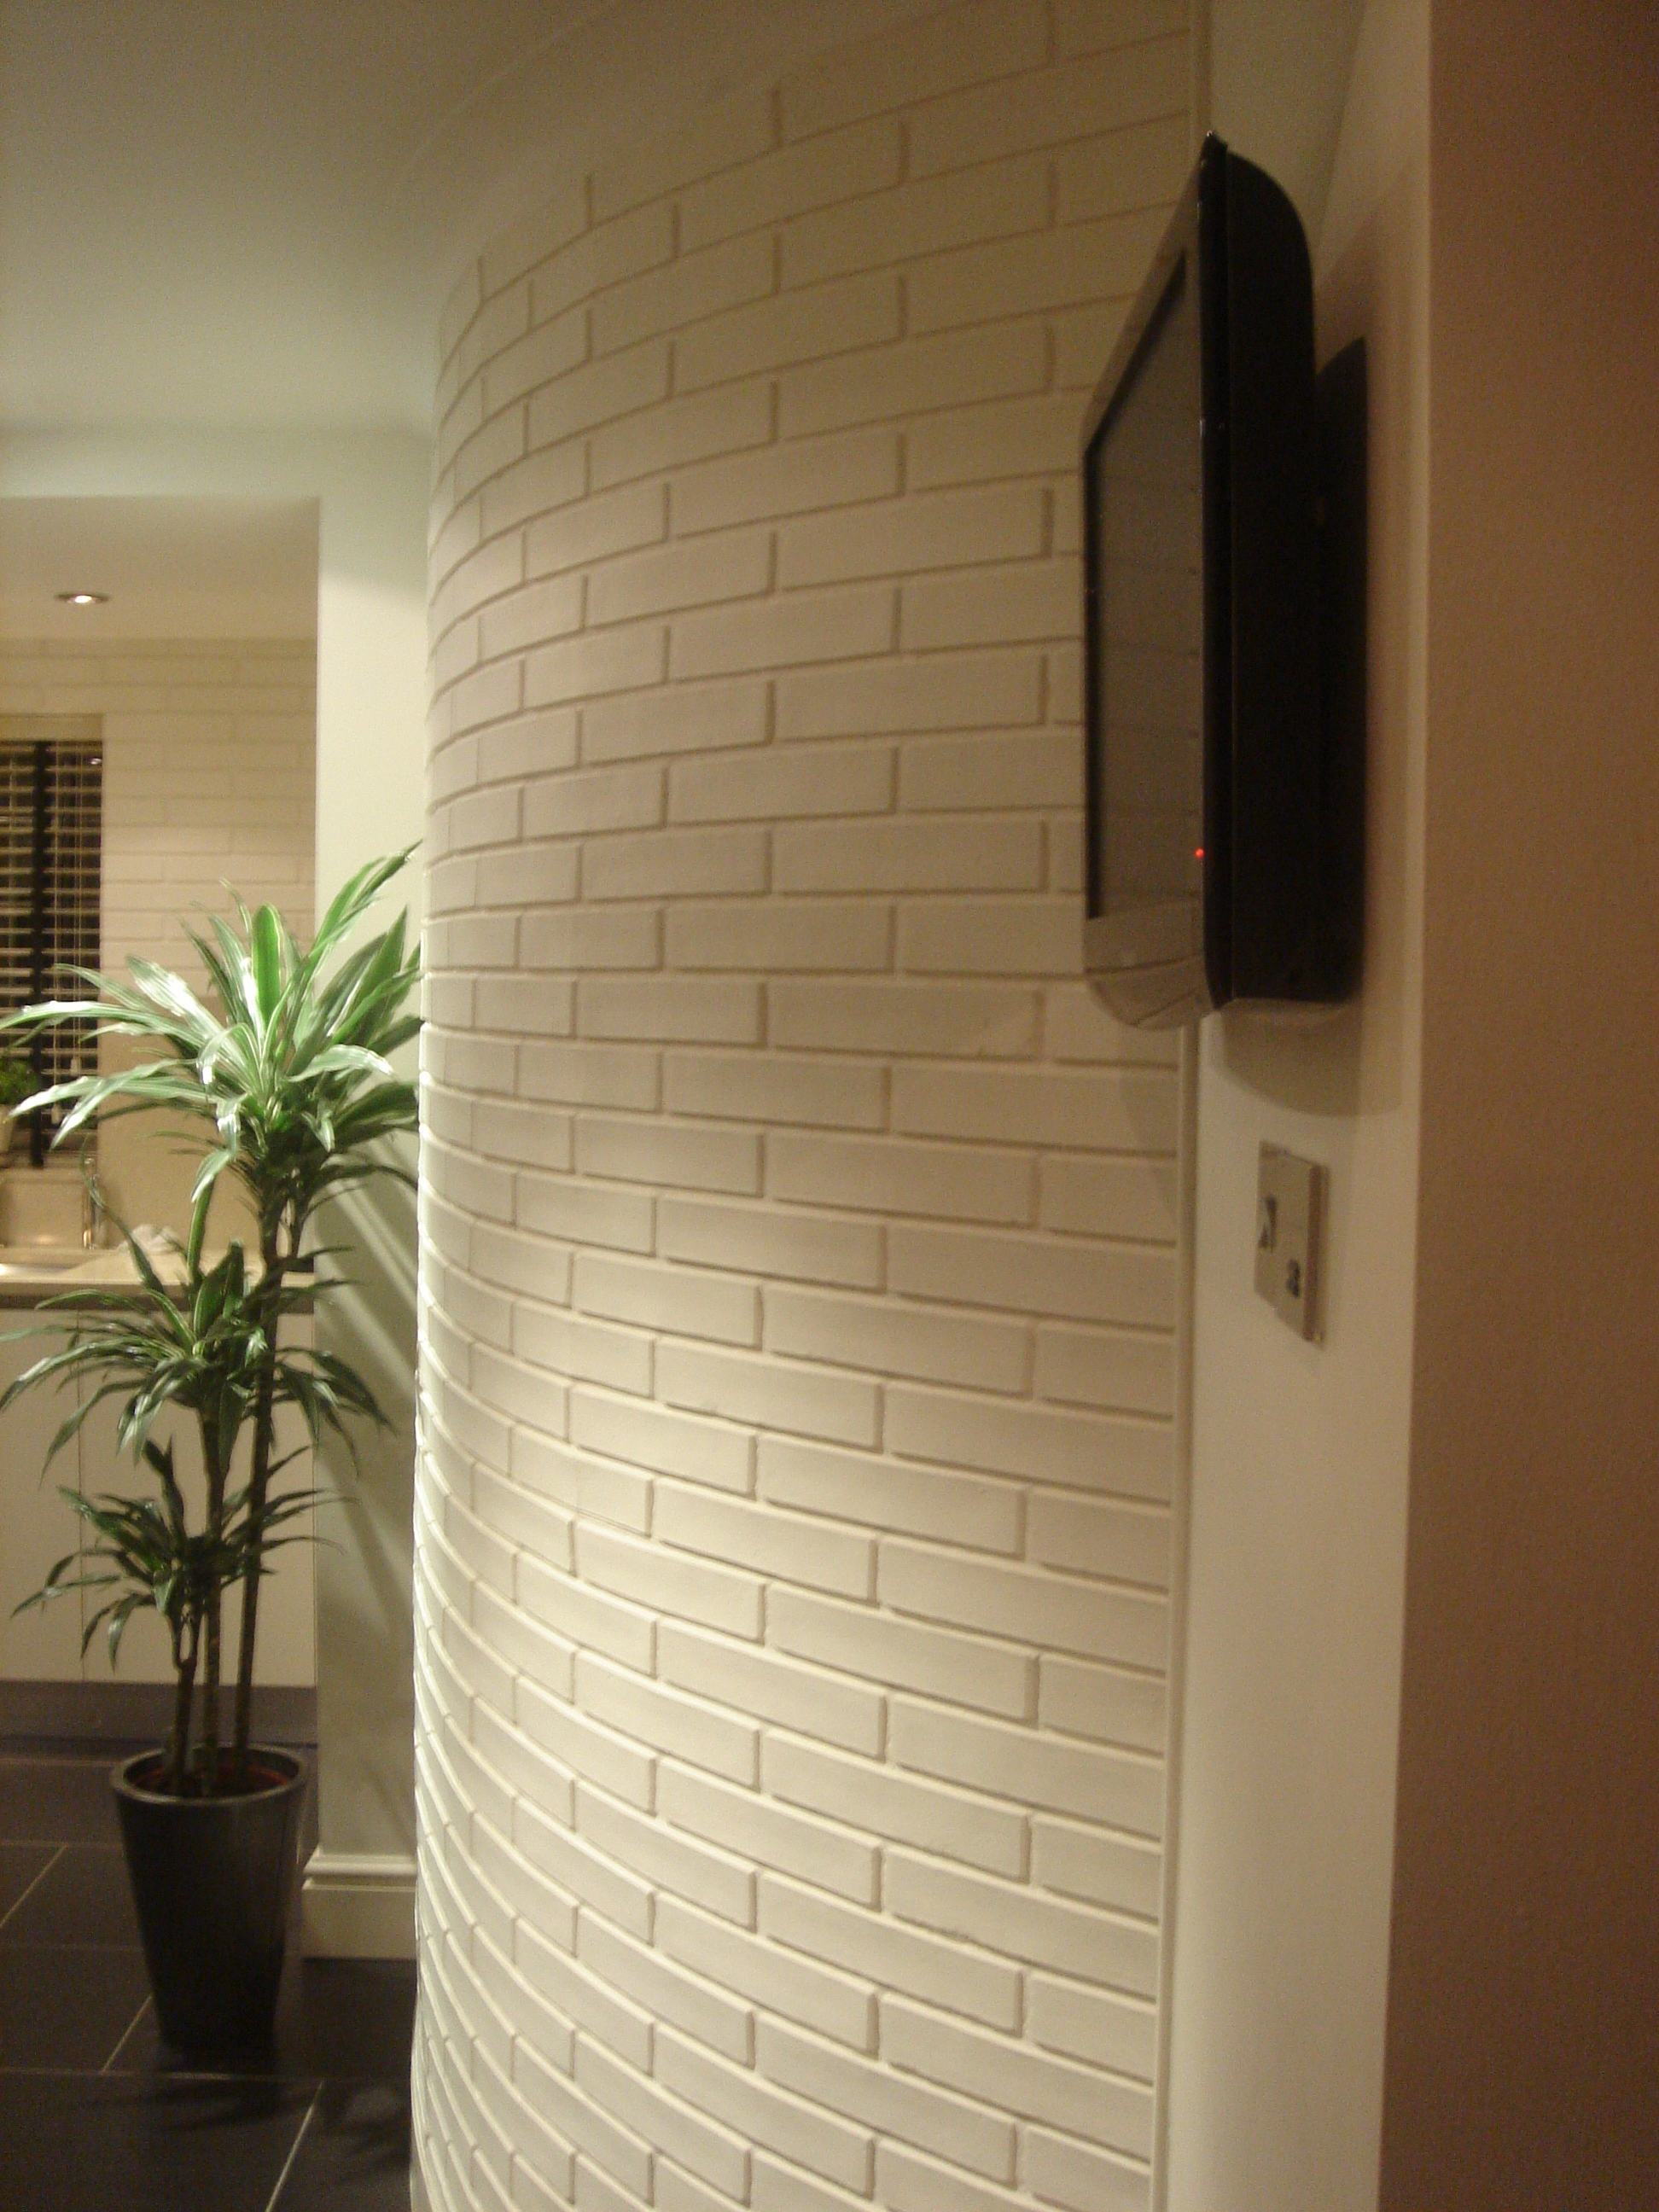 floor gallery from in create brick view chic lamp statement with wall a interiors interior white urban outfitters